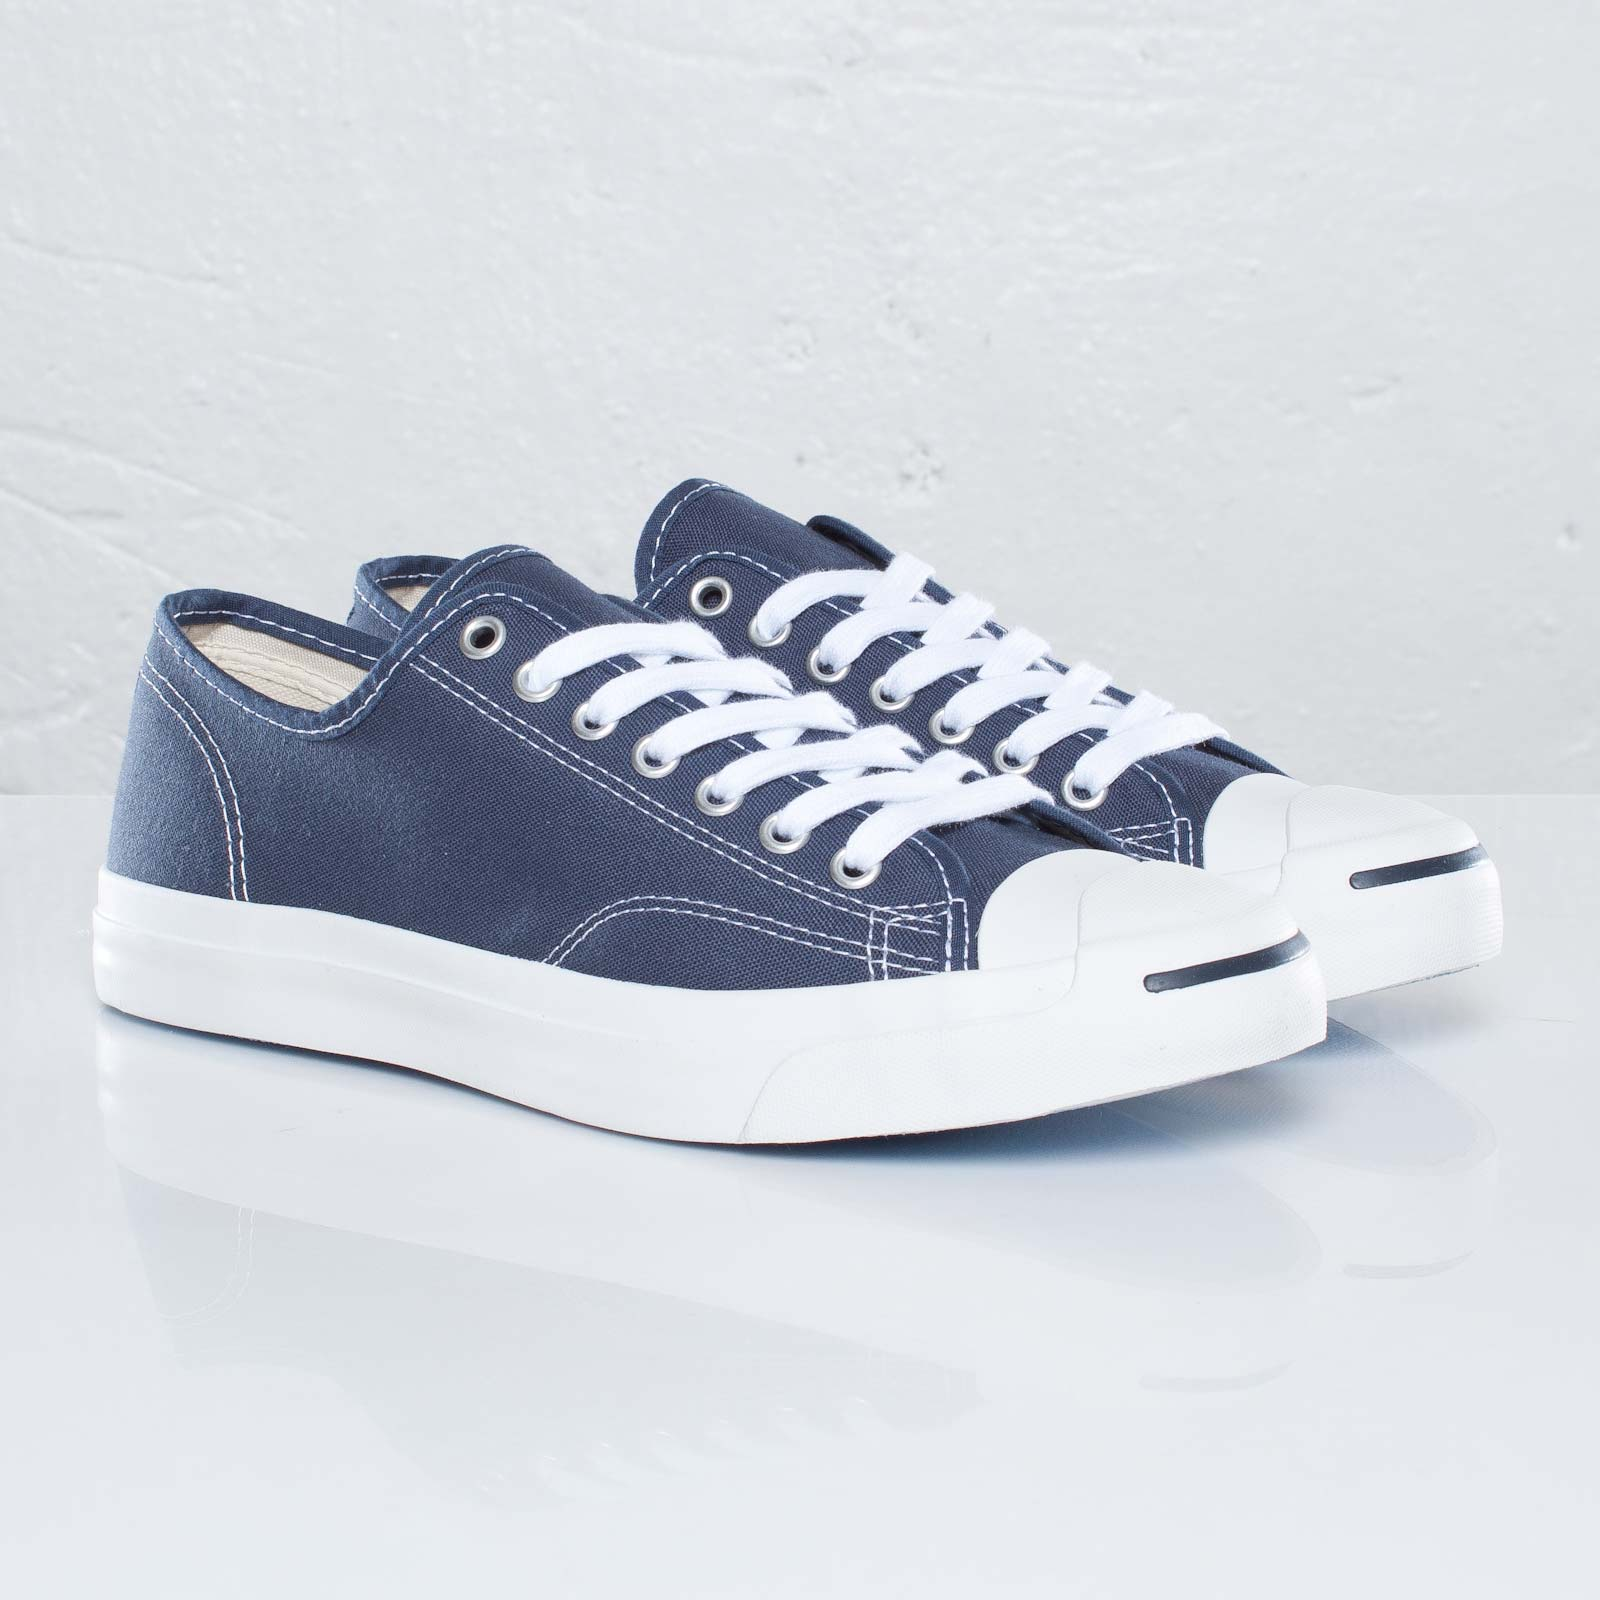 79db036d5dc6 Converse Jack Purcell CP Ox - 110158 - Sneakersnstuff